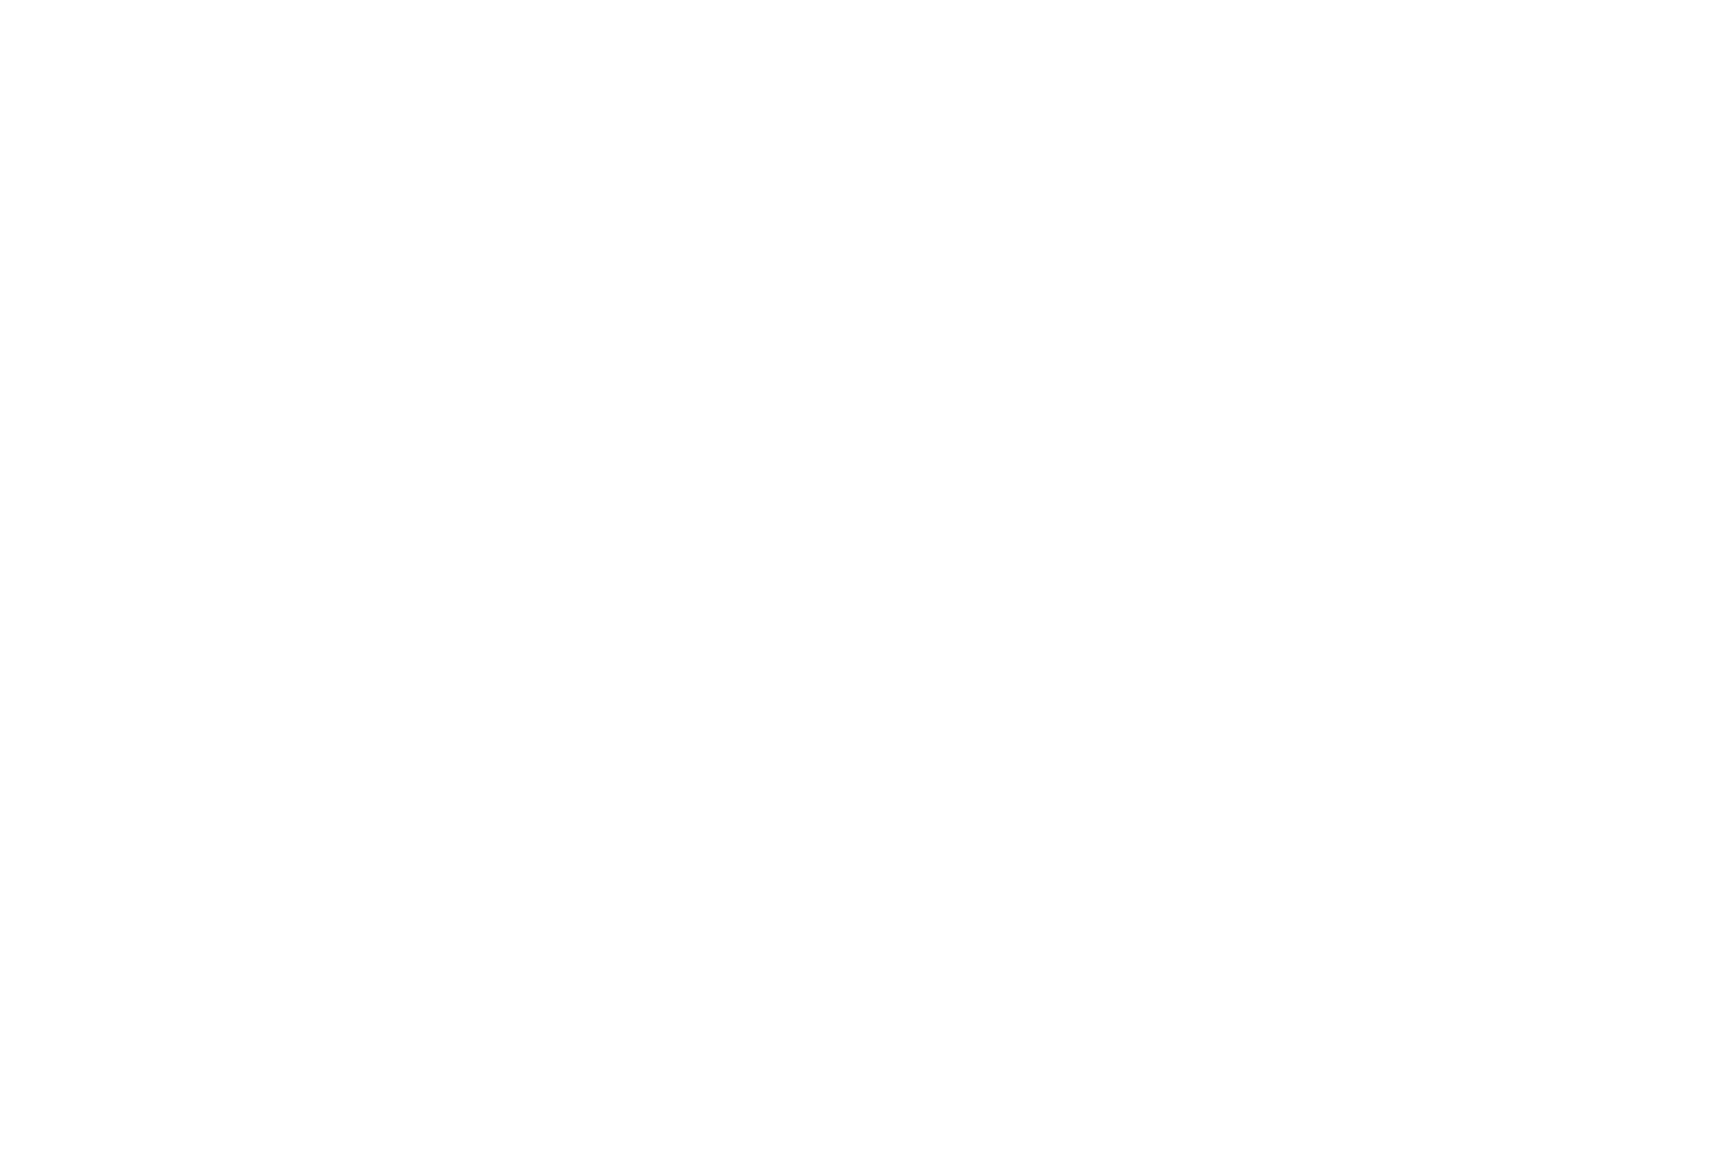 WINNER - 4th Dimension Independent Film Festival - 2020